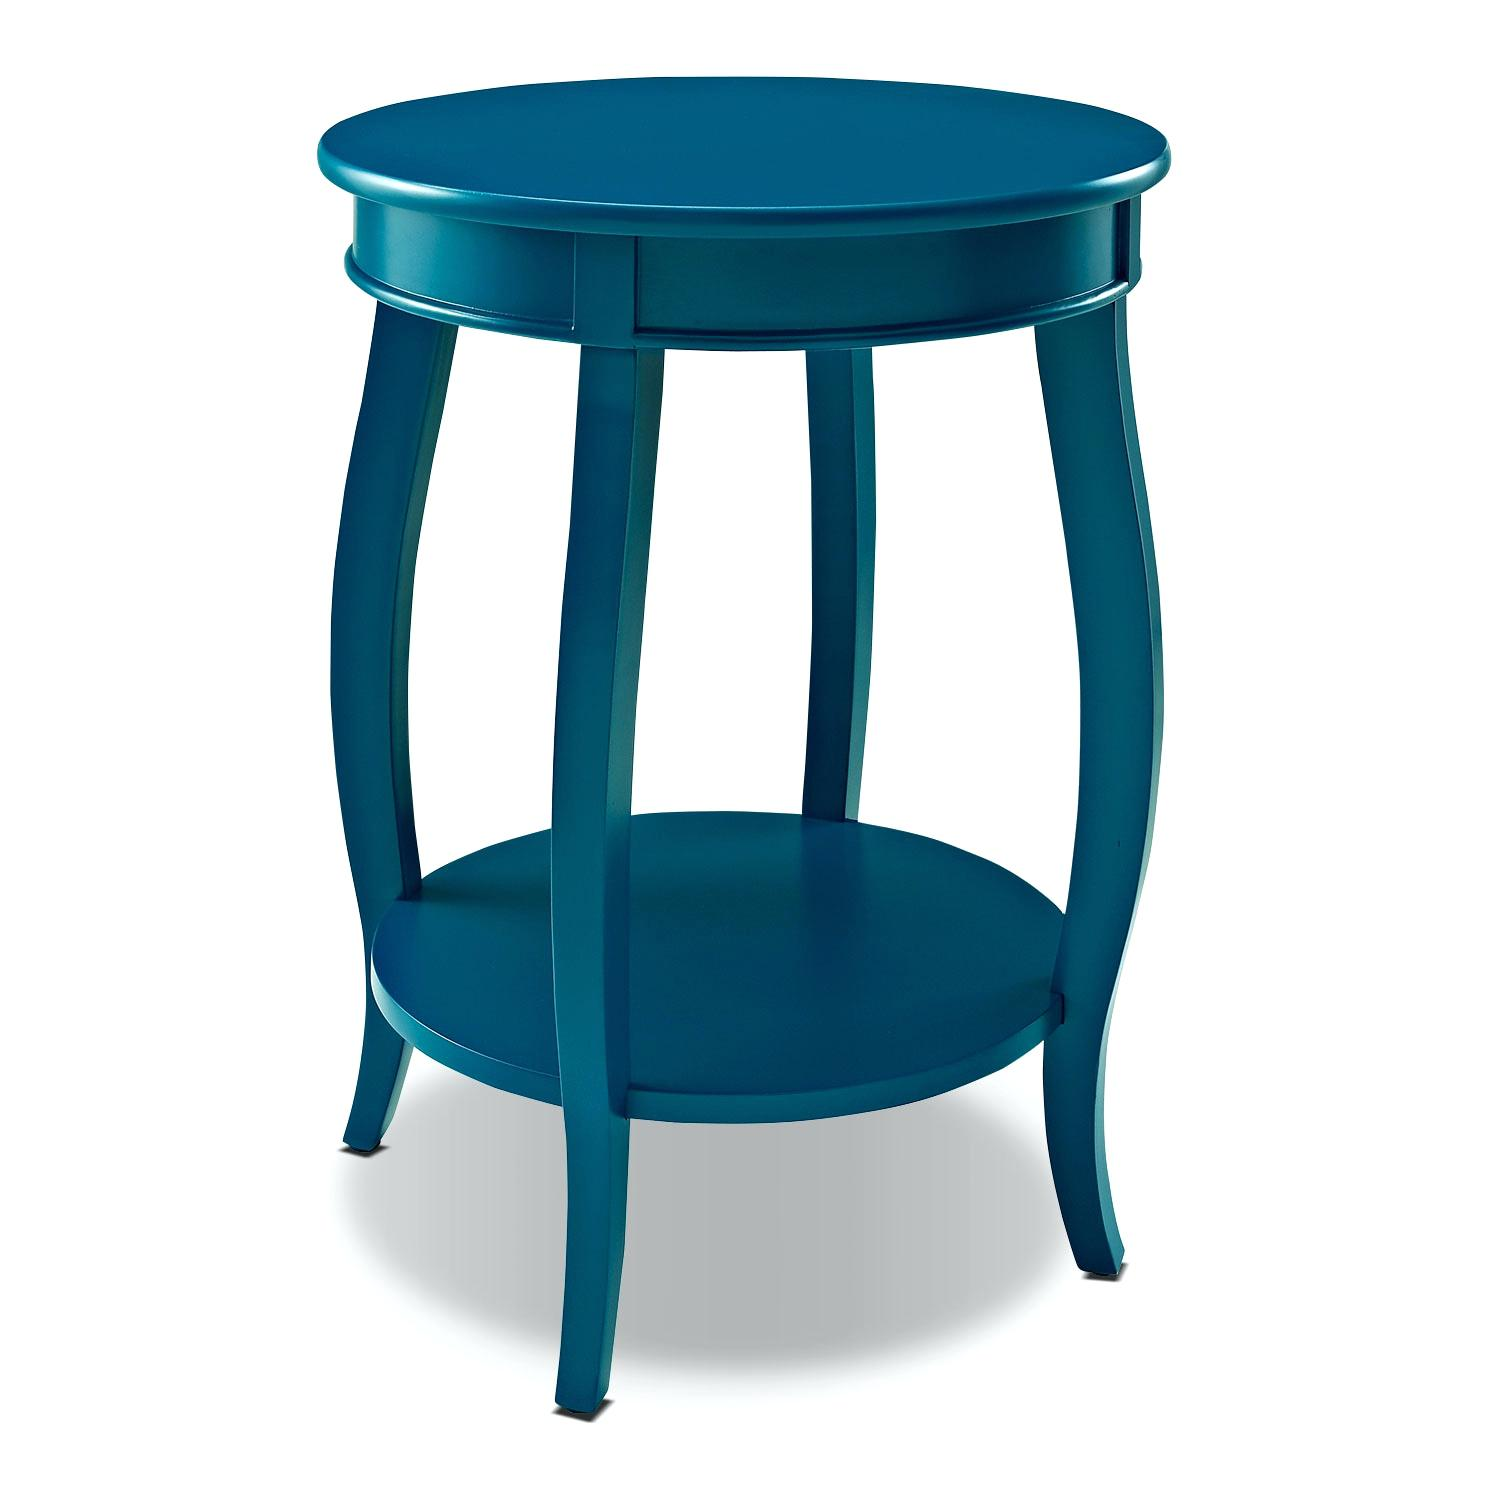 teal accent table botscamp and occasional furniture threshold fretwork door console cabinet white round side garden chairs center for living room barn battery powered lamps wide